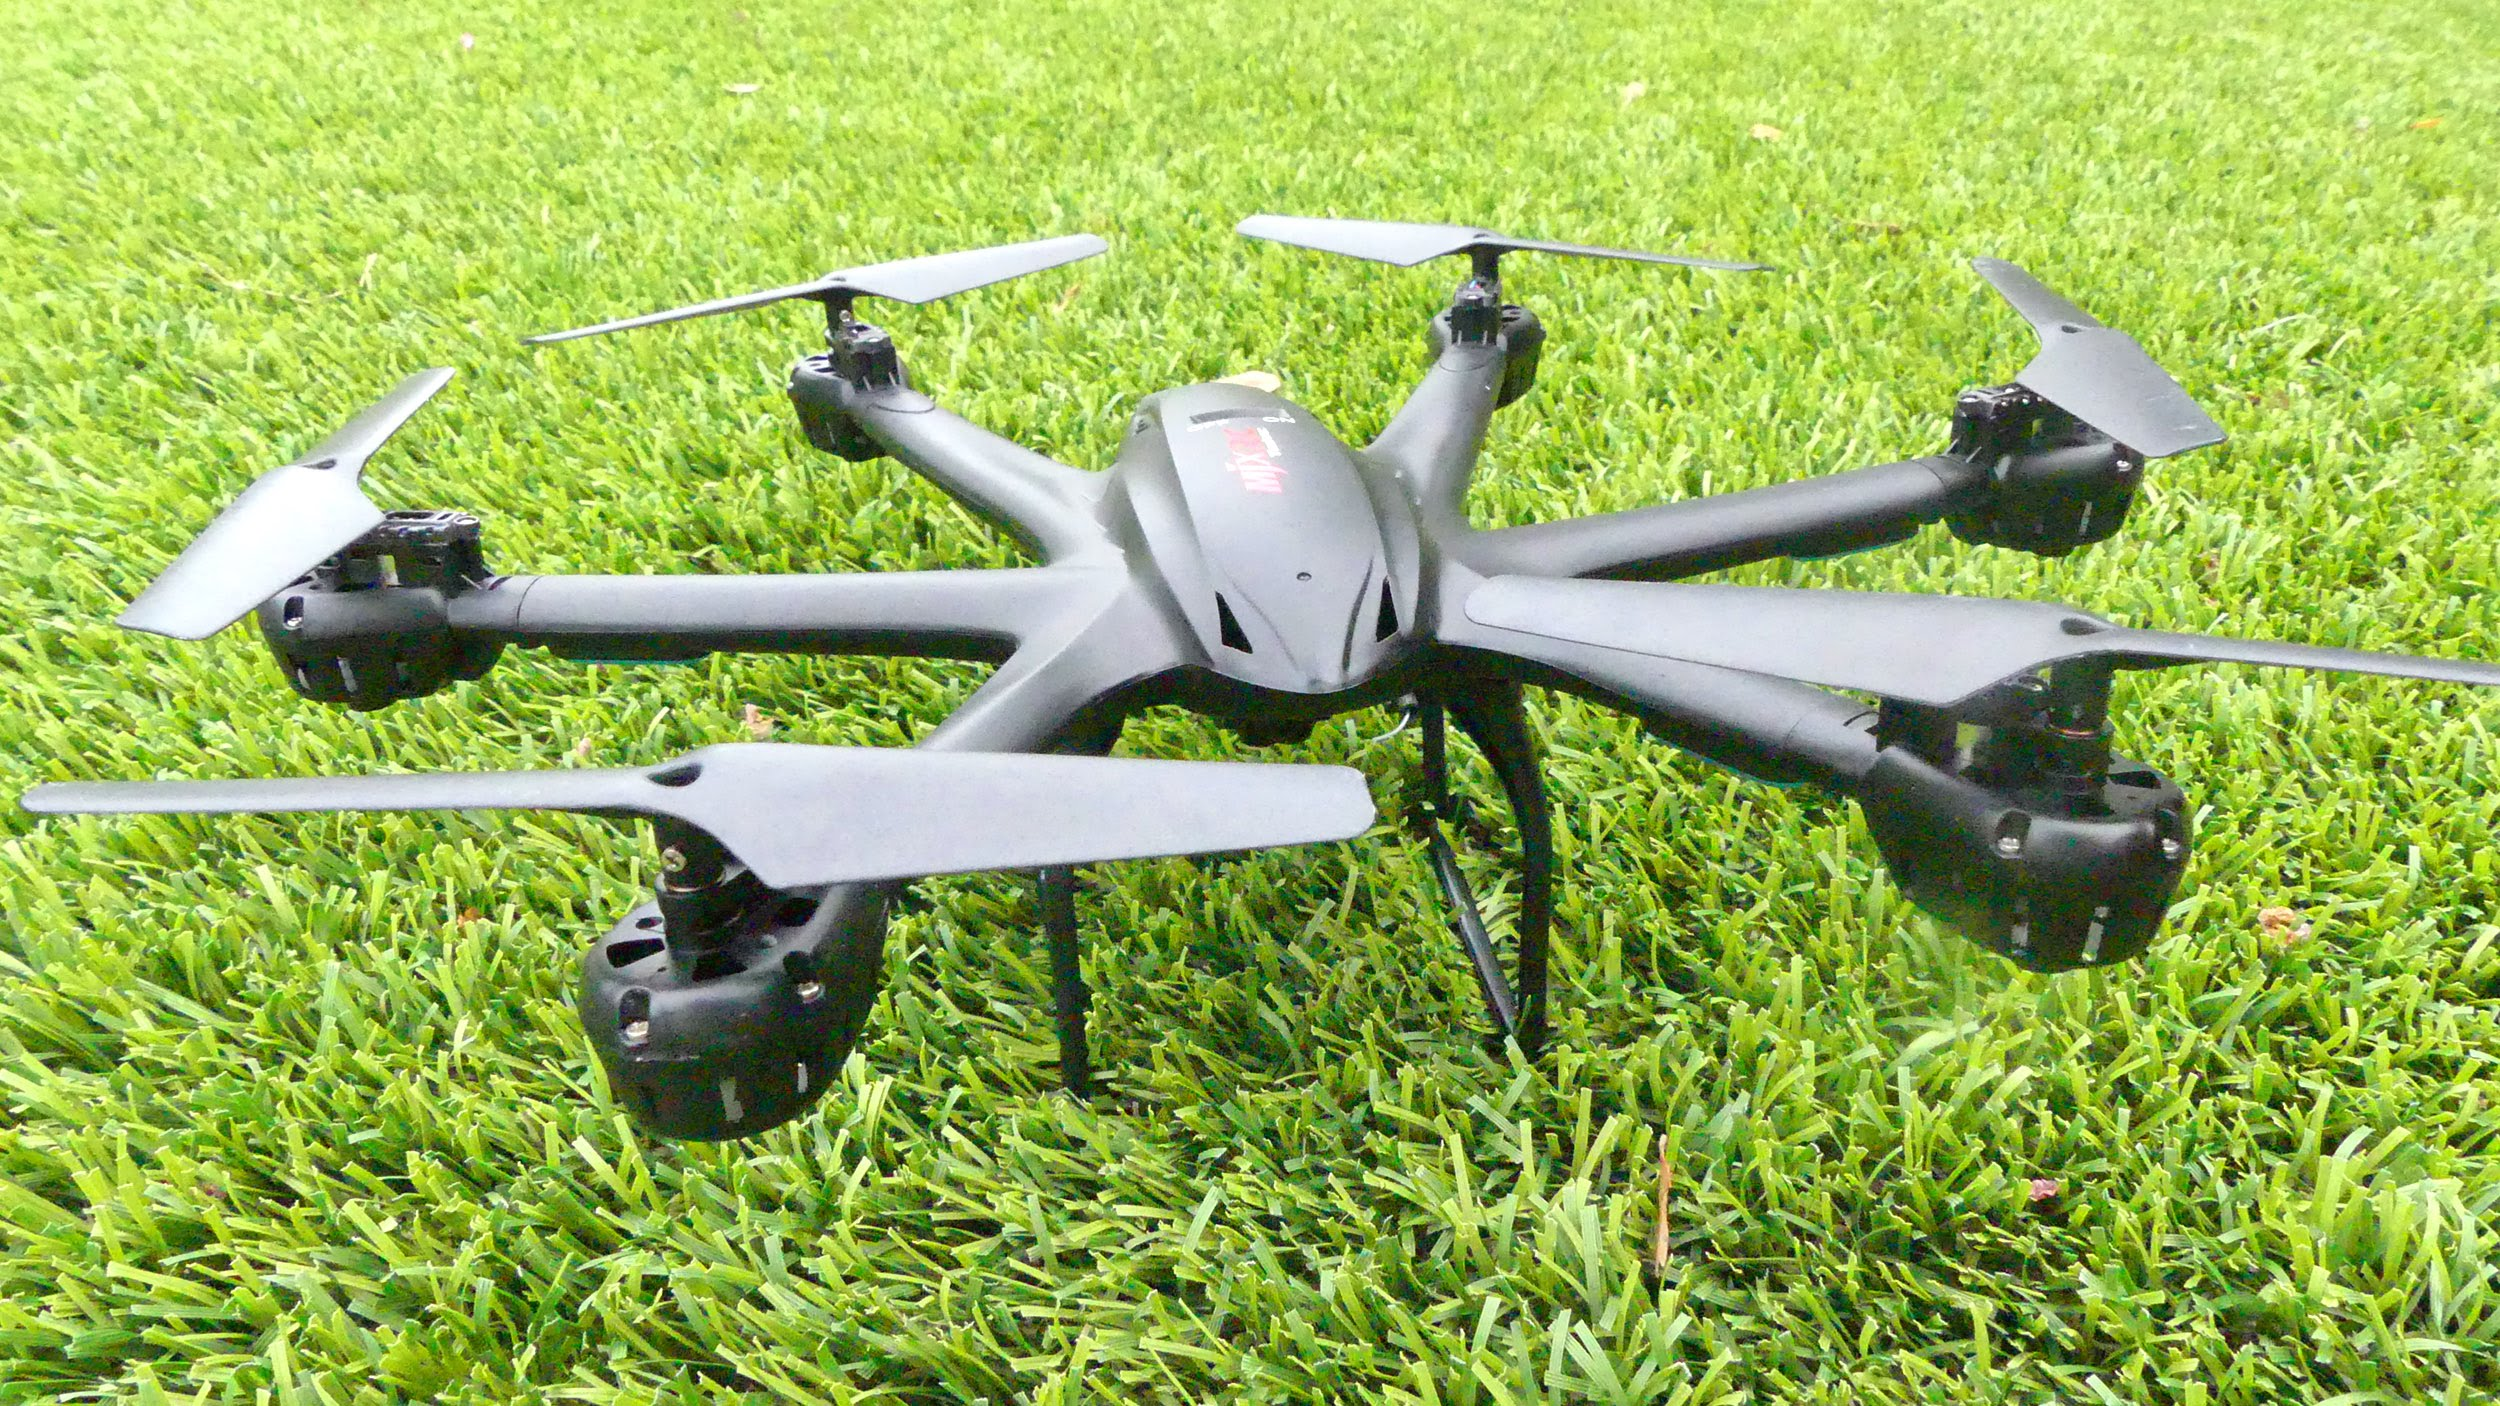 review-of-mjx-x601h-hexacopter